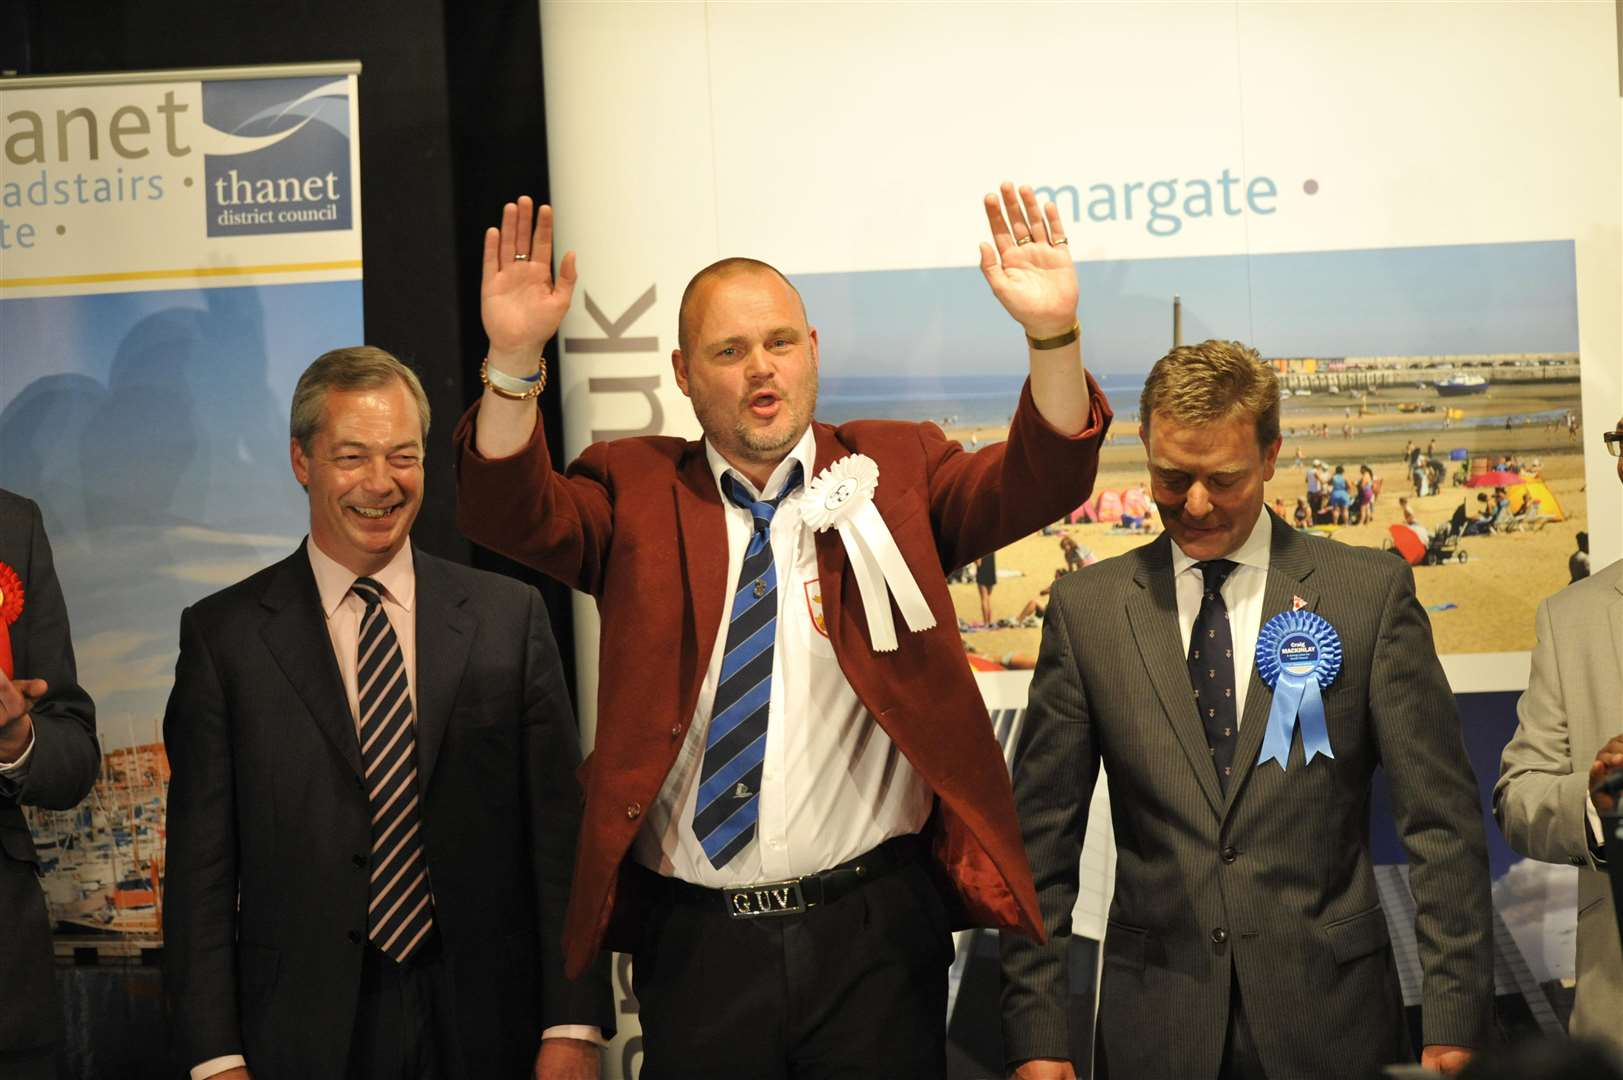 Craig Mackinlay, right, at the count for the 2015 general election when he beat comedian Al Murray, centre, and former Ukip leader Nigel Farage to the South Thanet seat